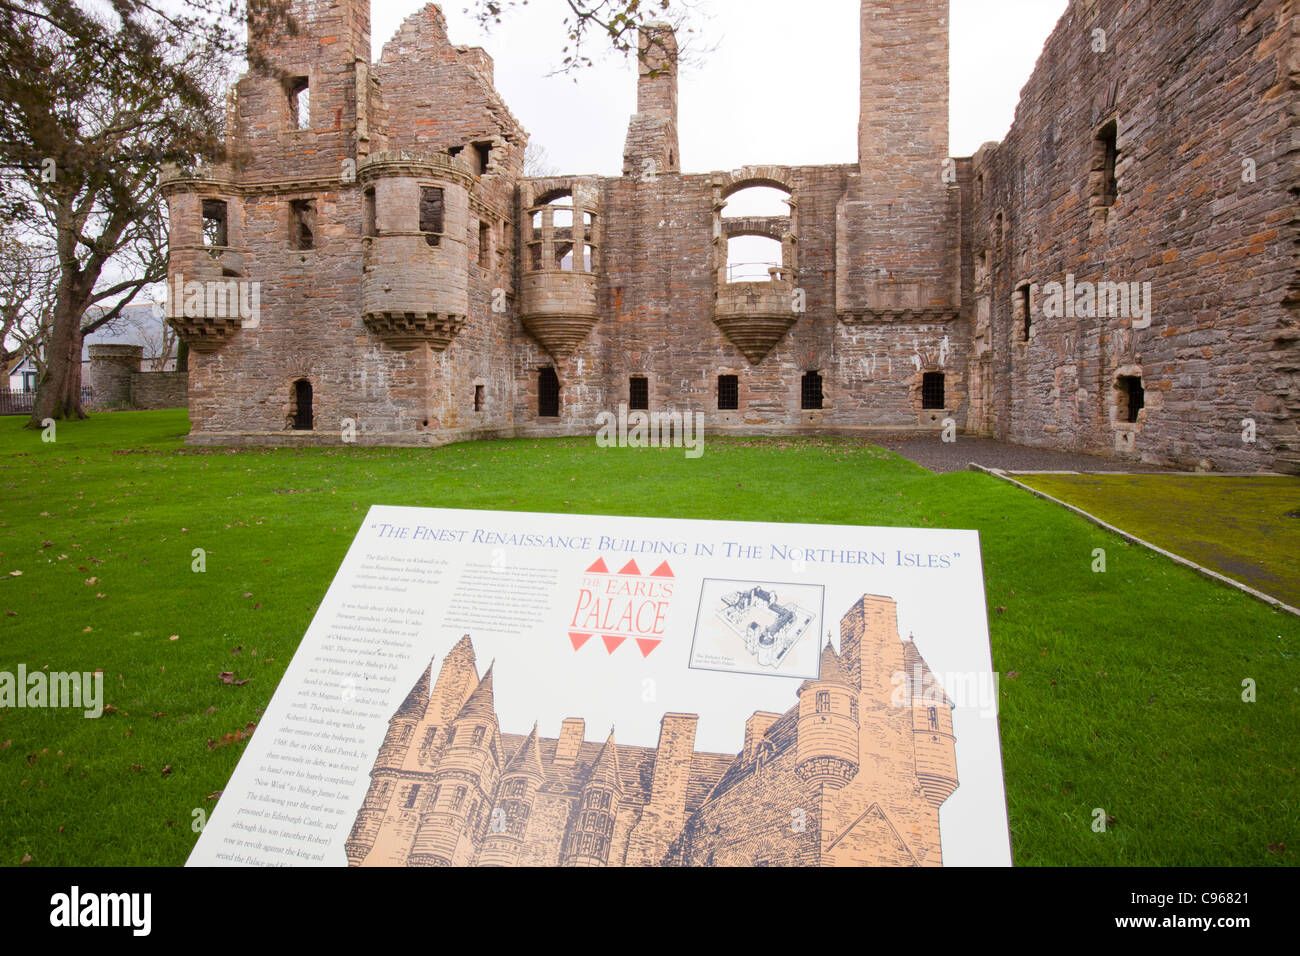 The Earls Palace in Kirkwall, Orkney, UK, was built in 1606 and is the finest Renaissance building in the northern - Stock Image